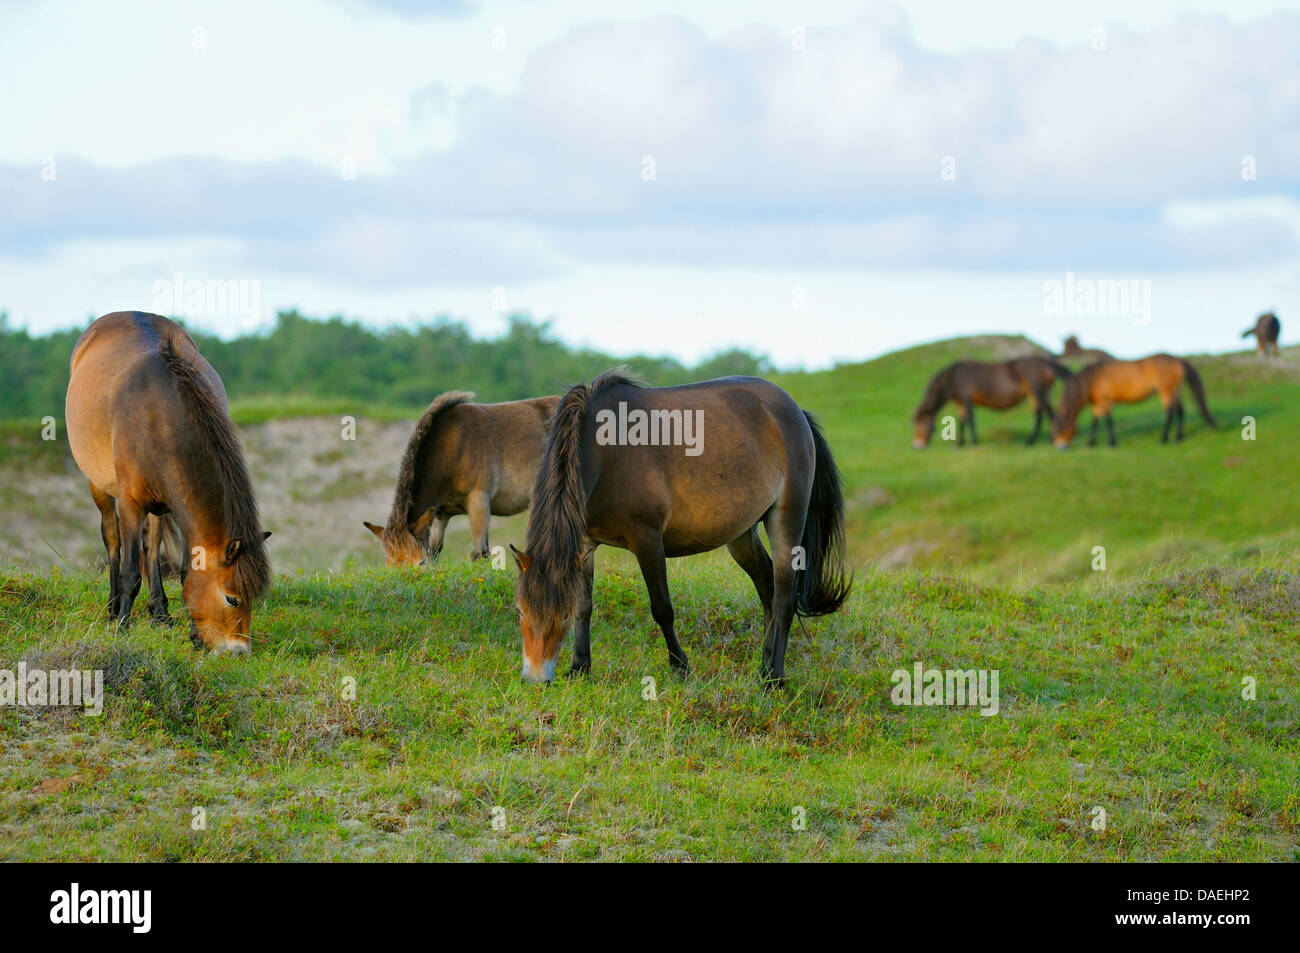 Exmoor pony (Equus przewalskii f. caballus), herd of horses grazing in the conservation area Bollekamer, Netherlands, - Stock Image